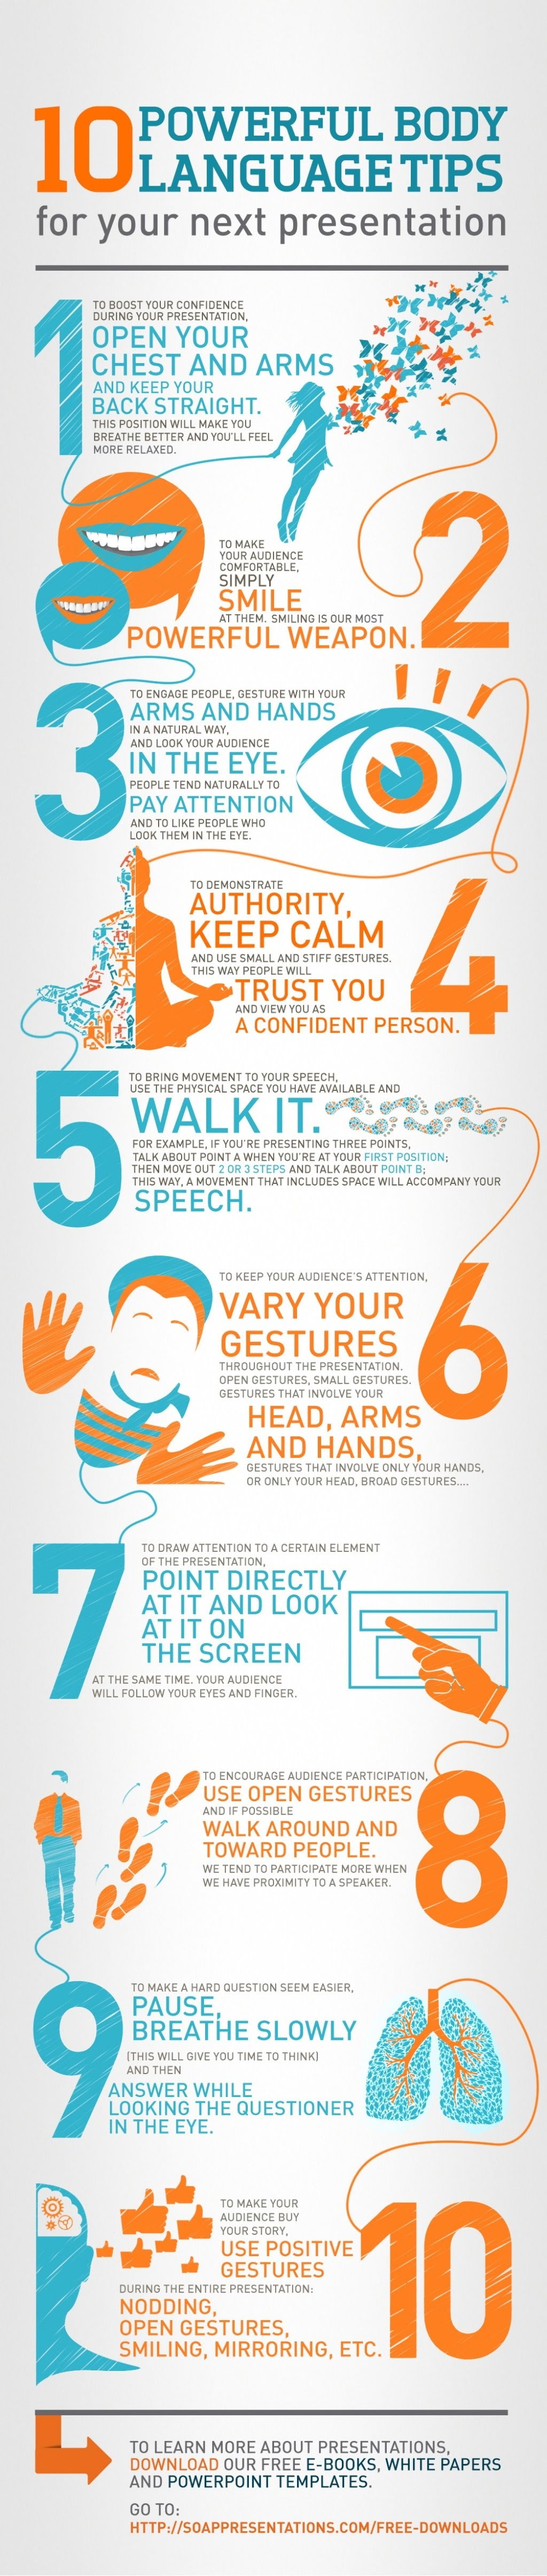 10 Powerful Body Language Tips for your next Presentation - #infographic